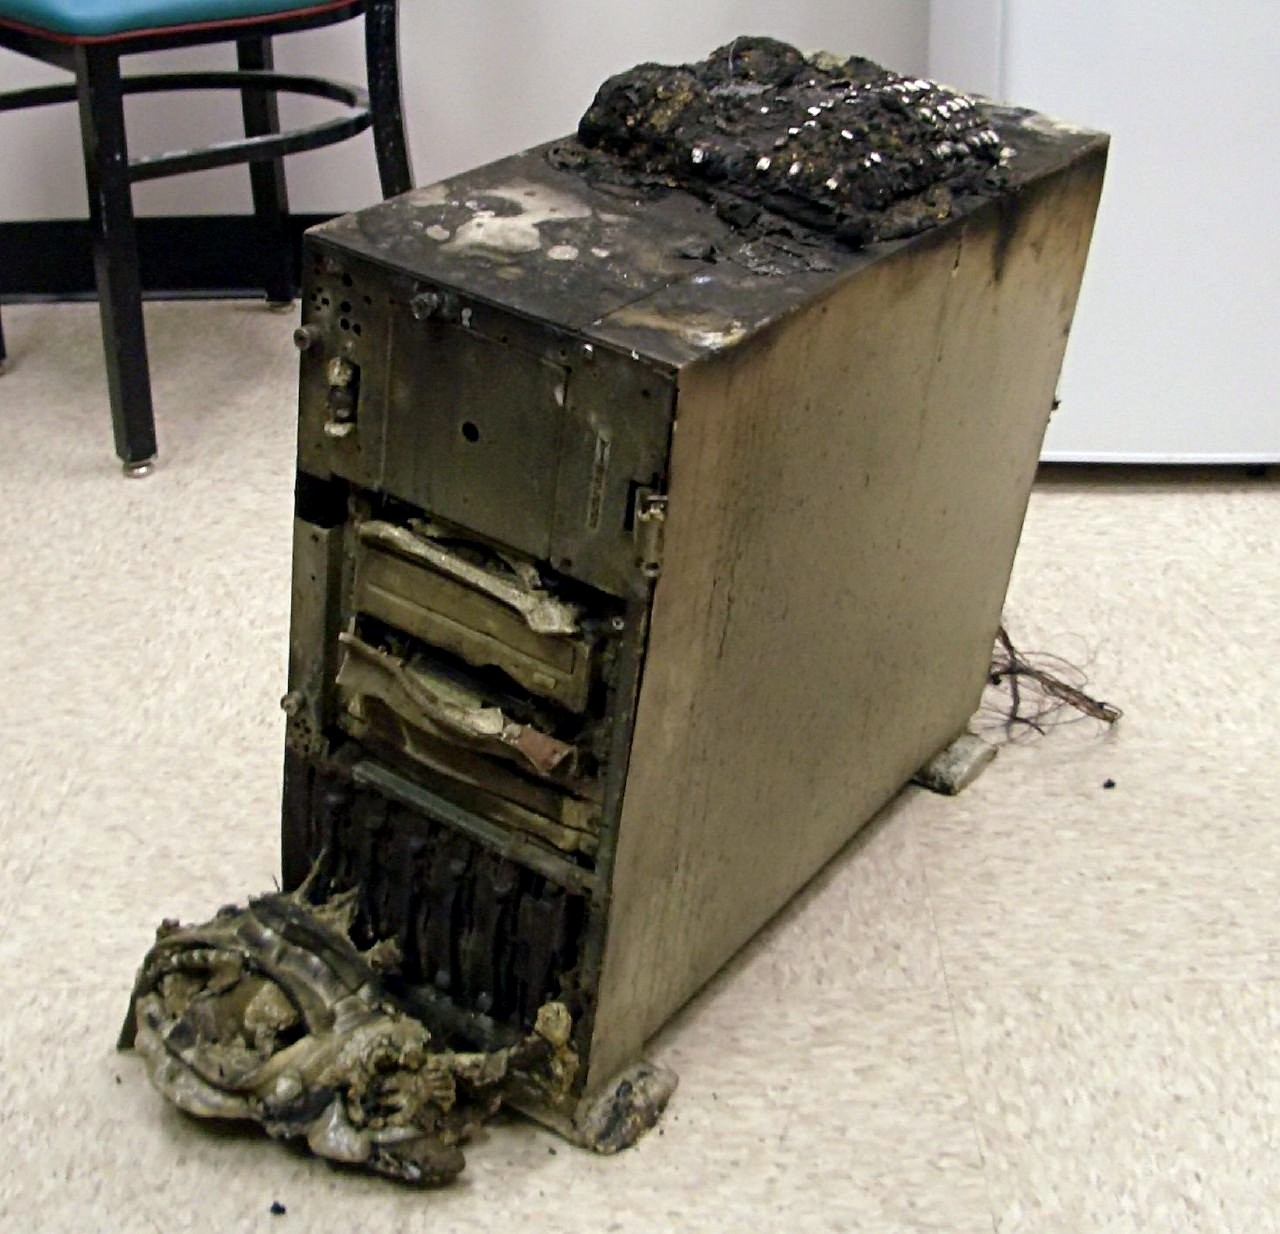 Burned down computer